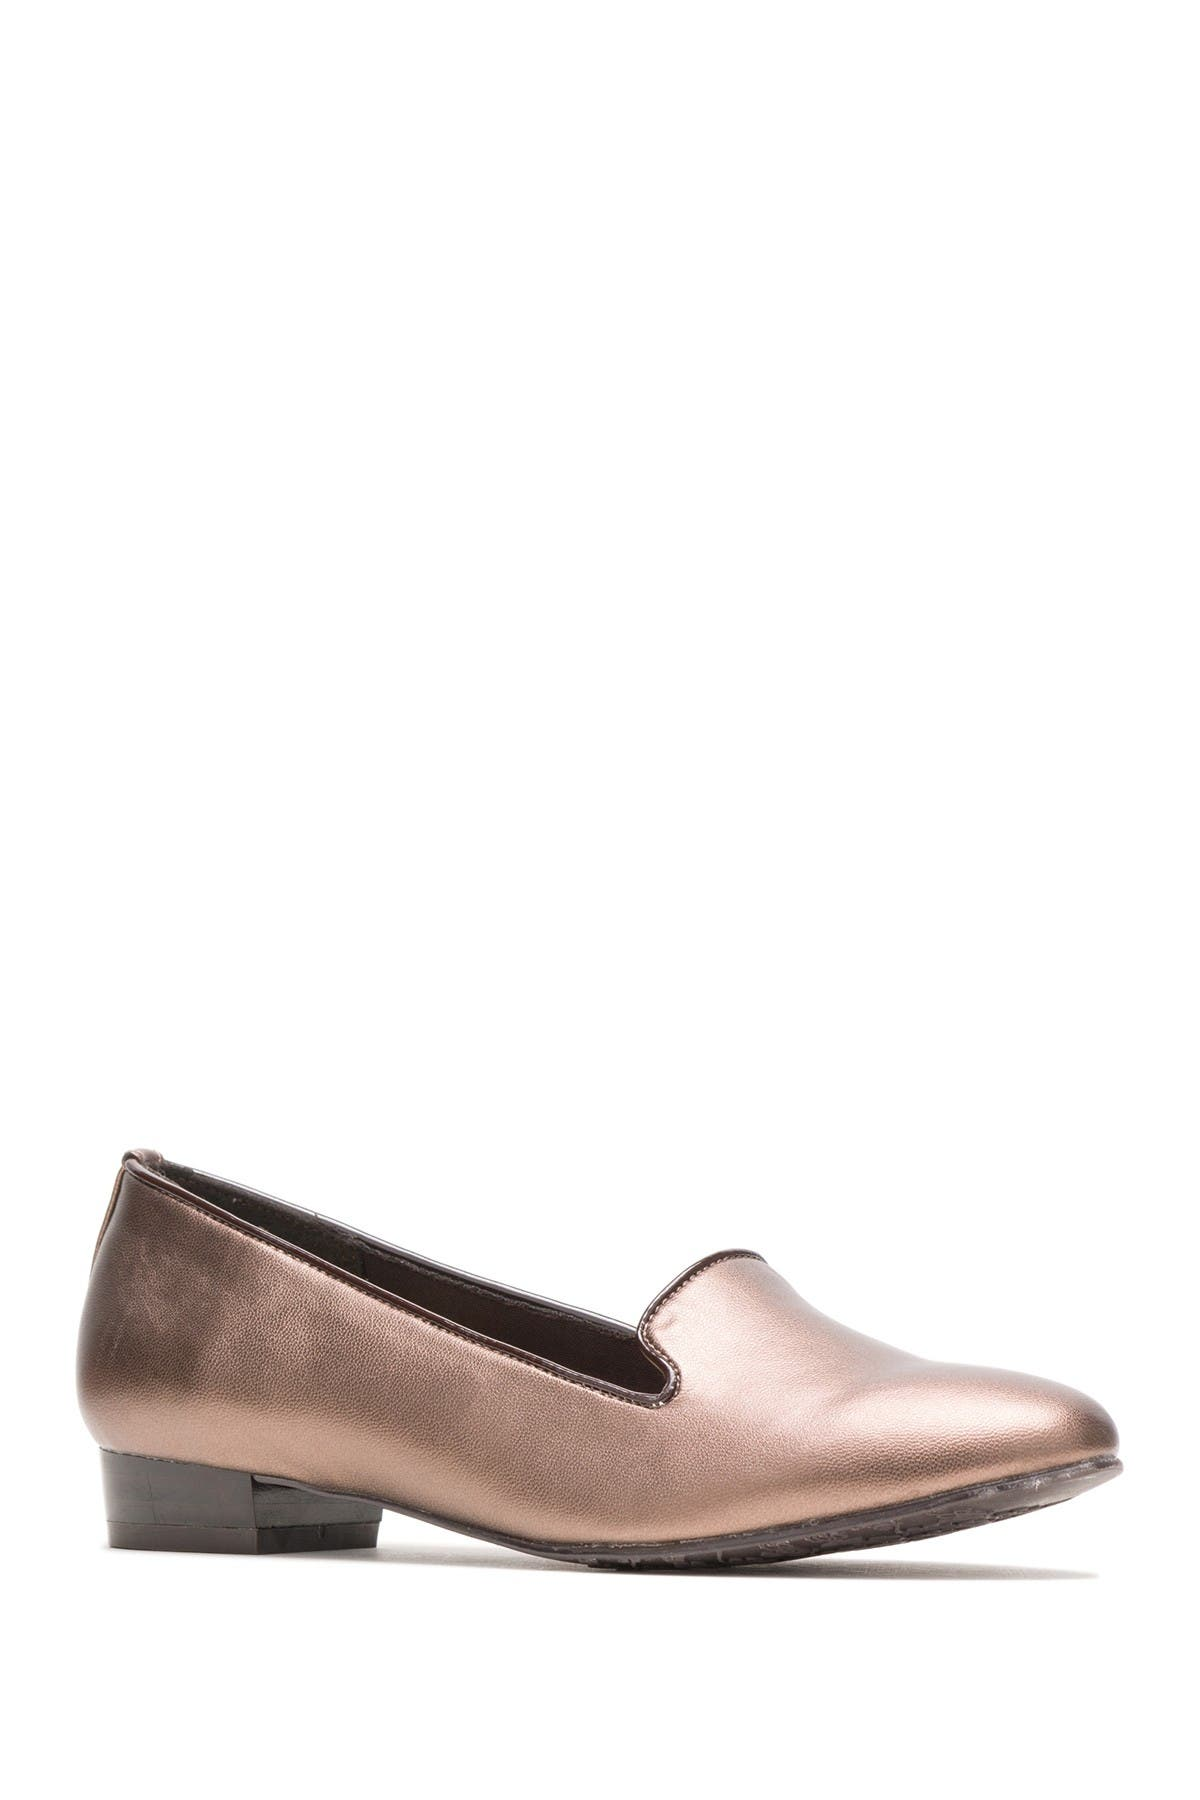 Image of Hush Puppies Charmy Slip-On Loafer - Wide Width Available